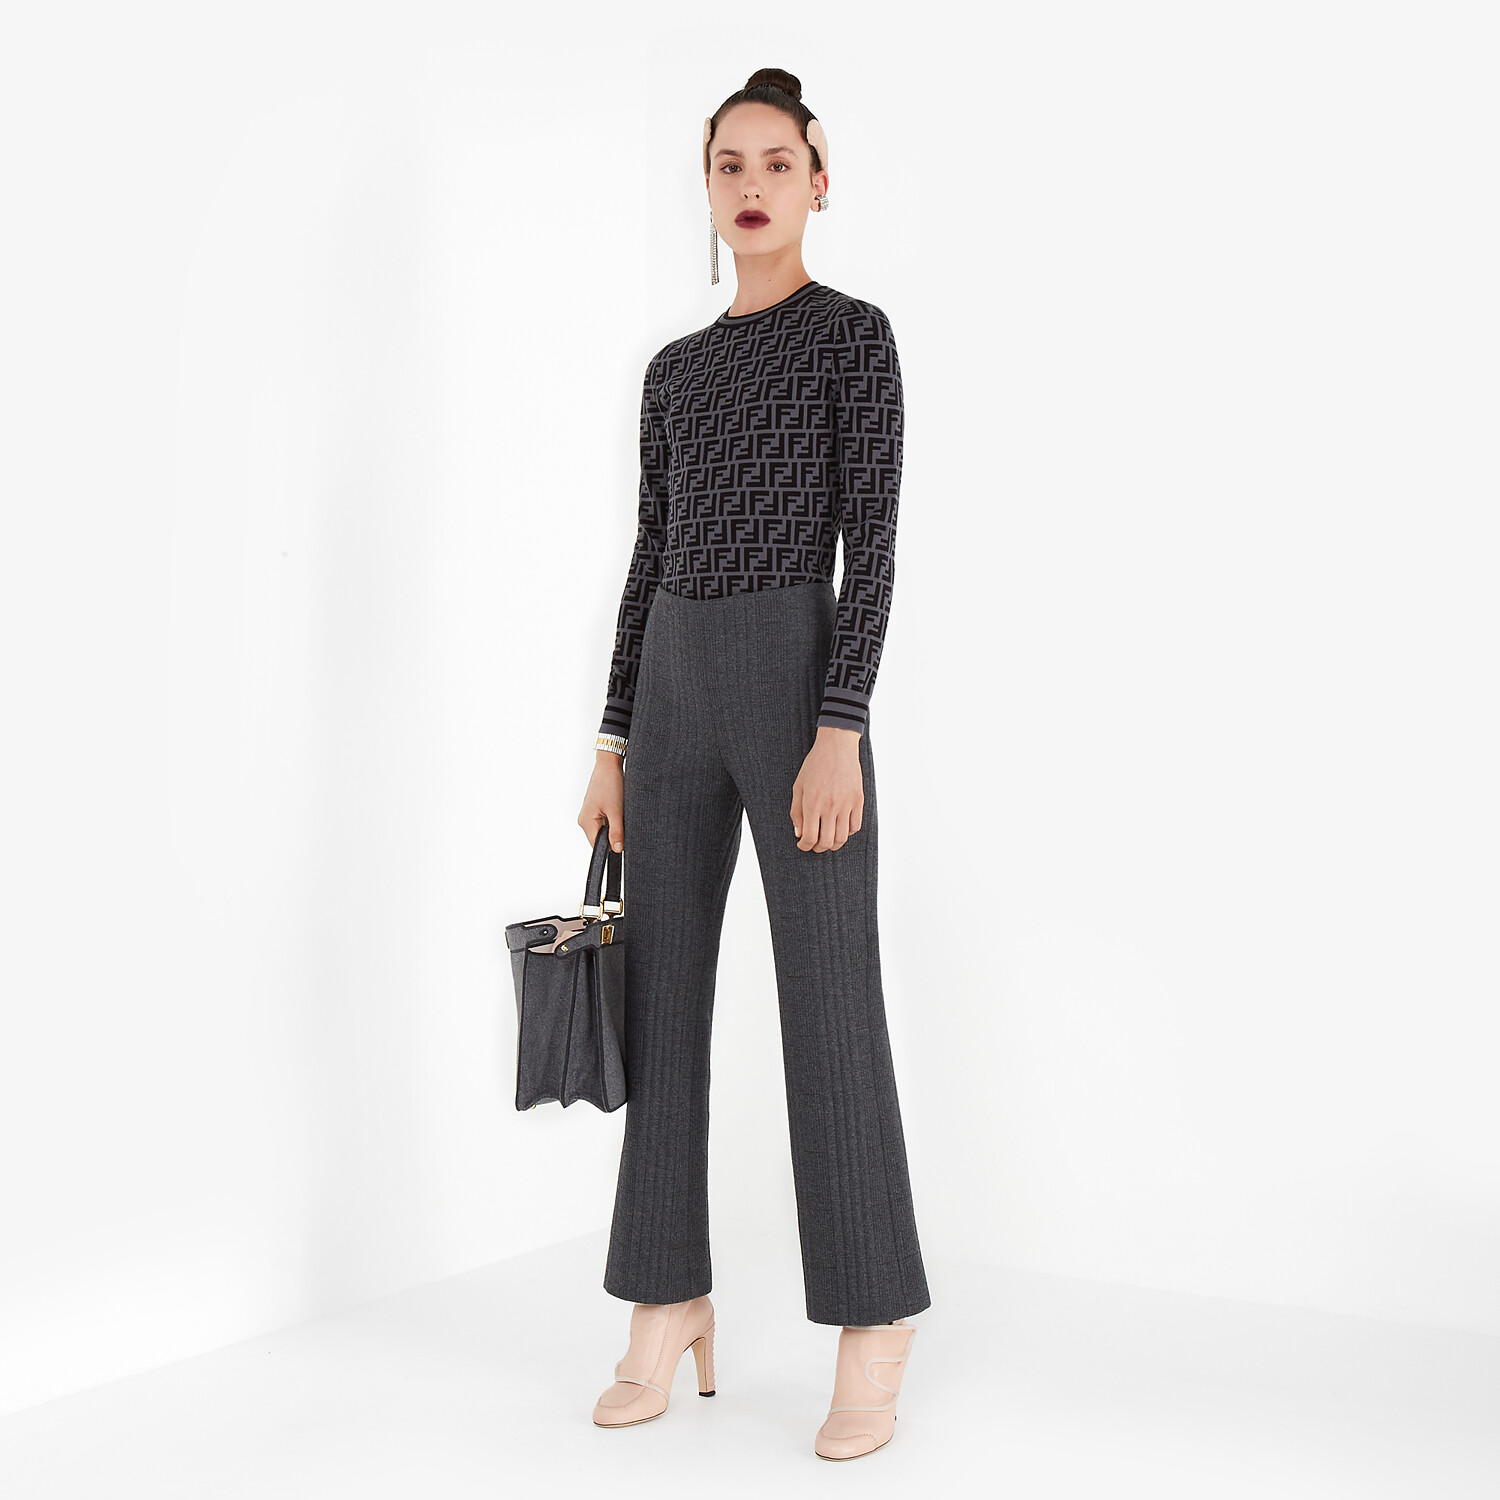 FENDI TROUSERS - Grey cashmere and flannel trousers - view 4 detail